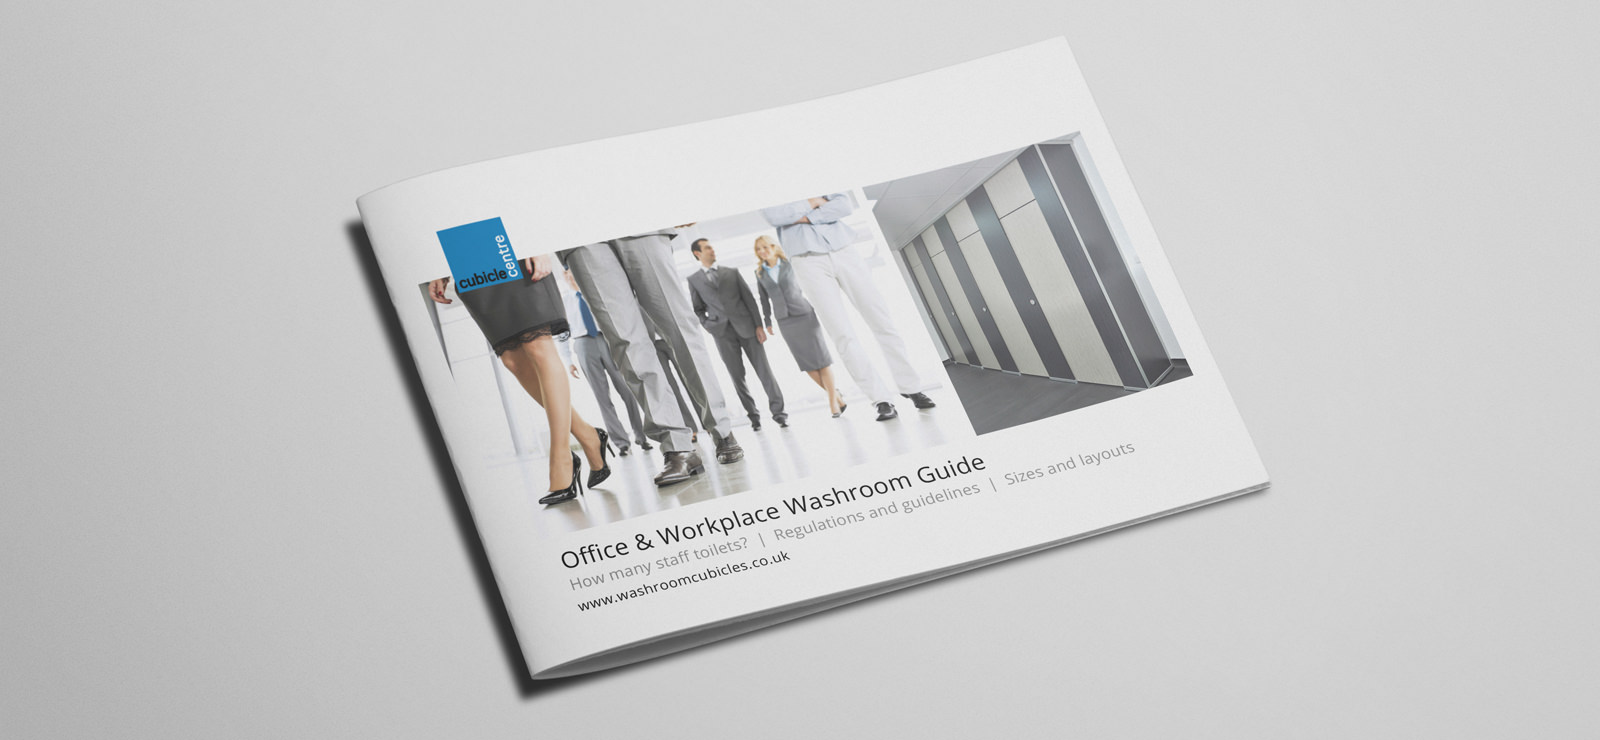 office-workplace-washroom-guide